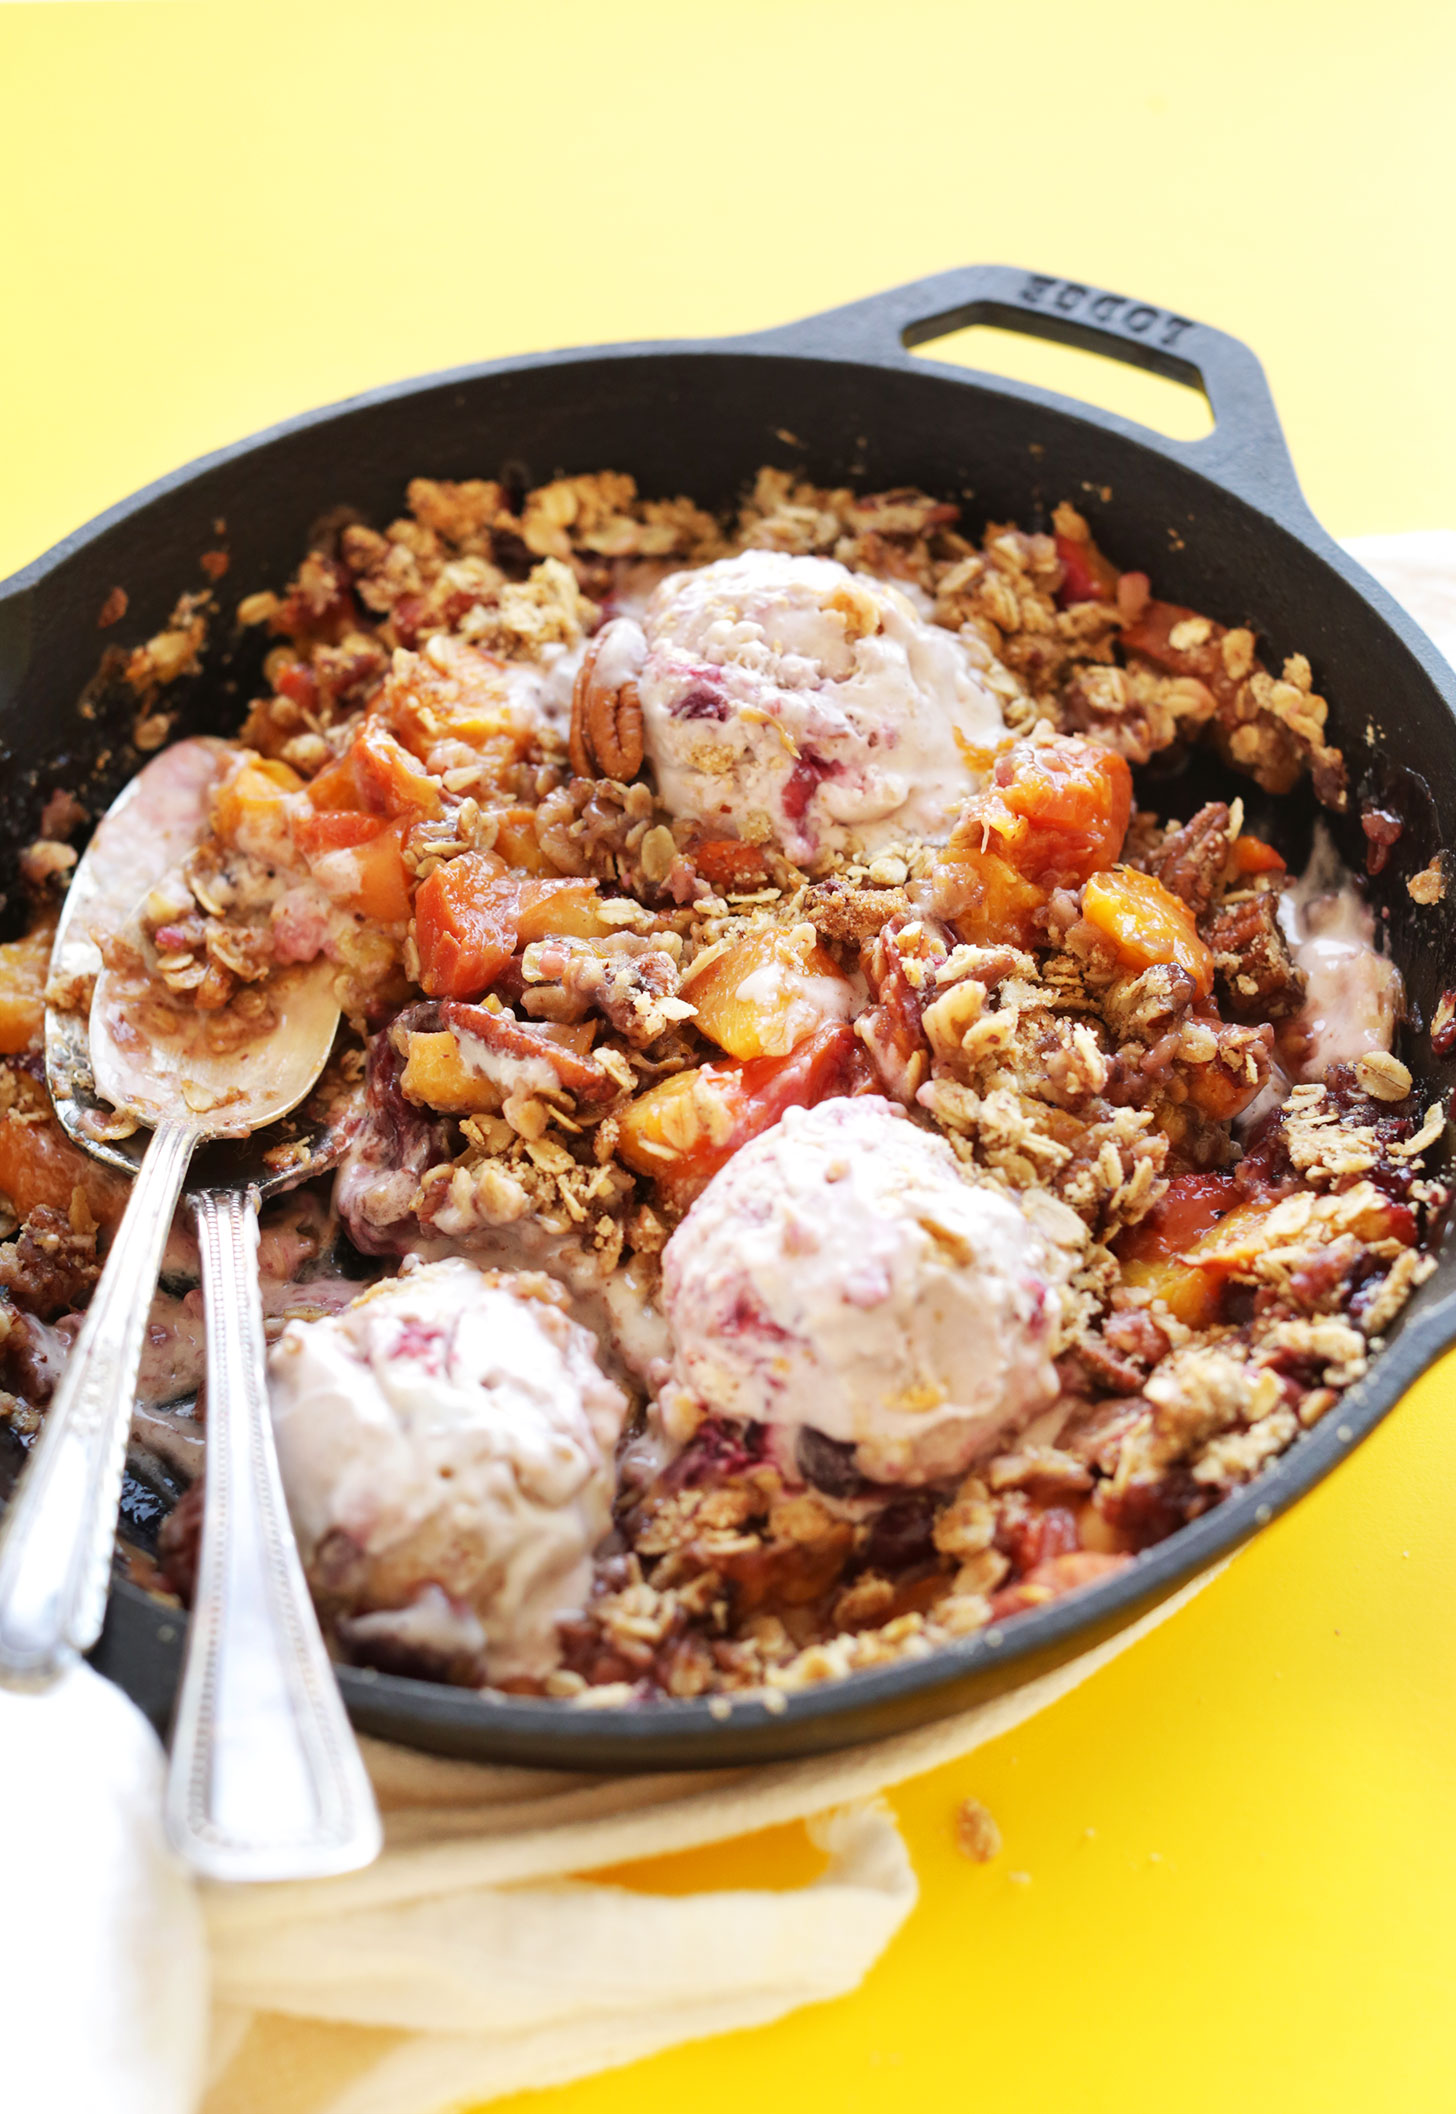 Spoons in a cast-iron skillet for eating our Summer Peach Crisp with dairy-free ice cream